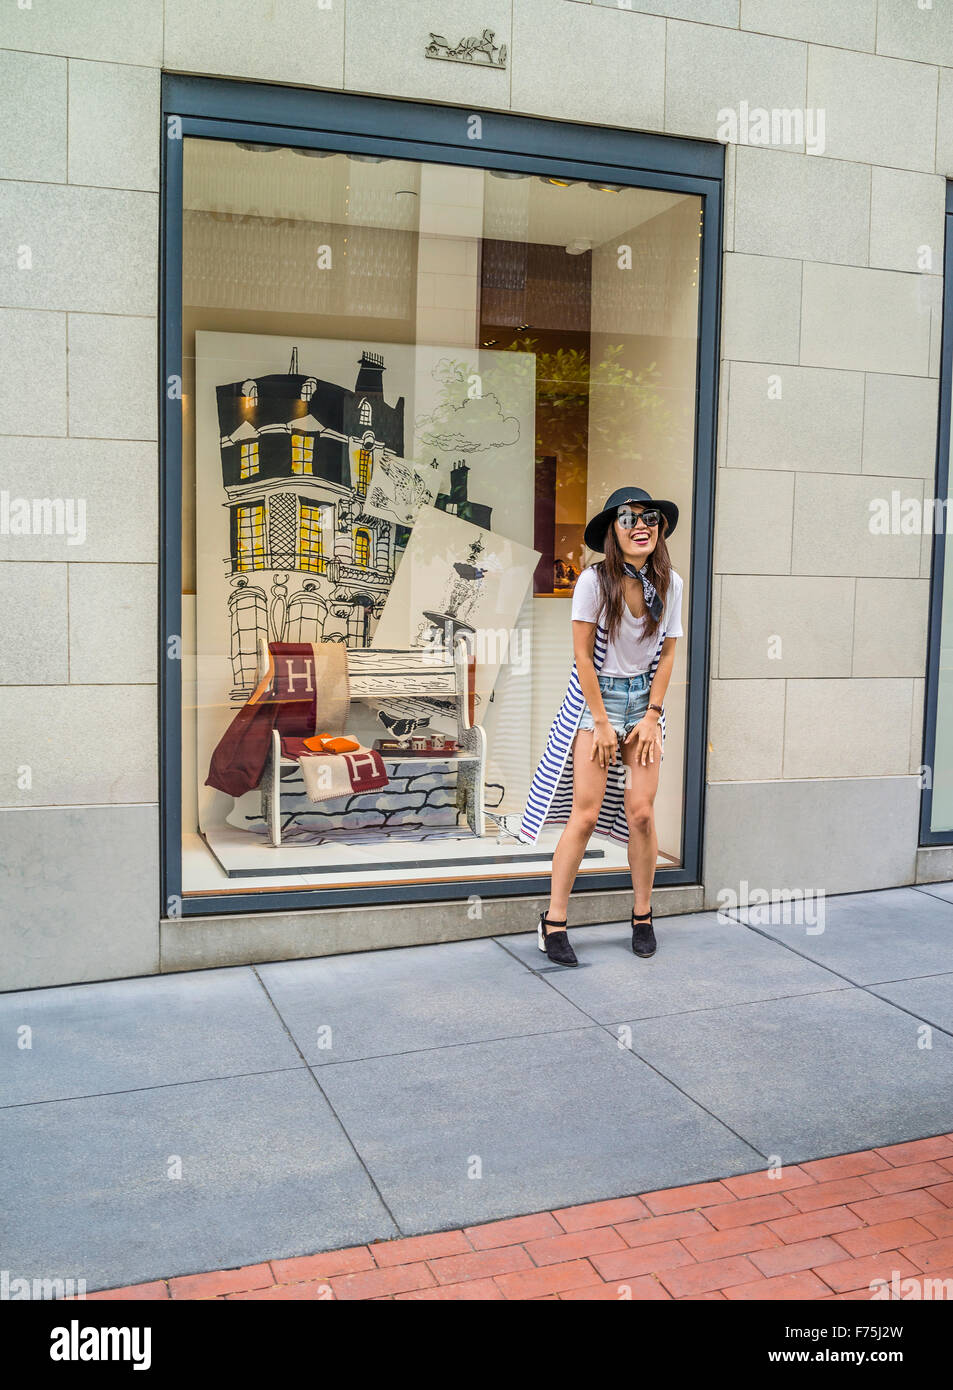 A young Asian adult woman having fun, smiling and pretend modeling in front of a high end San Francisco store window. - Stock Image